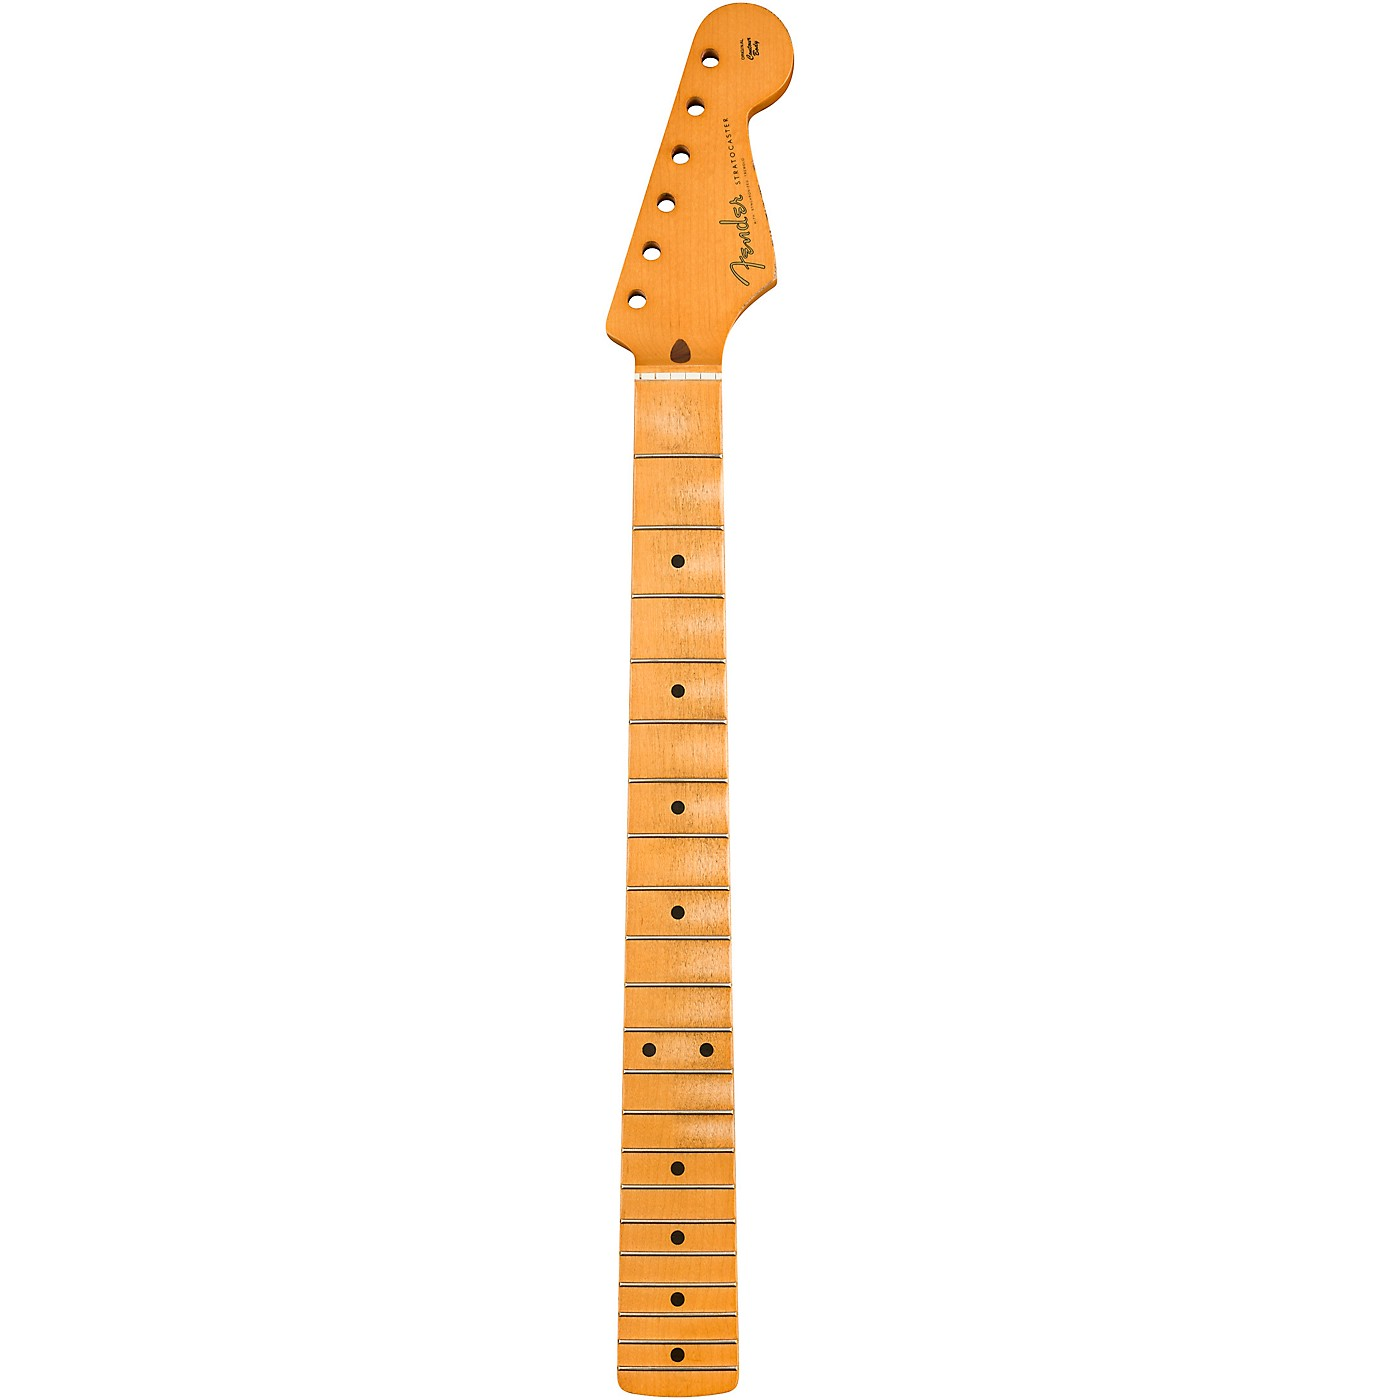 Fender Road Worn 50s Stratocaster Neck with Maple Fingerboard thumbnail